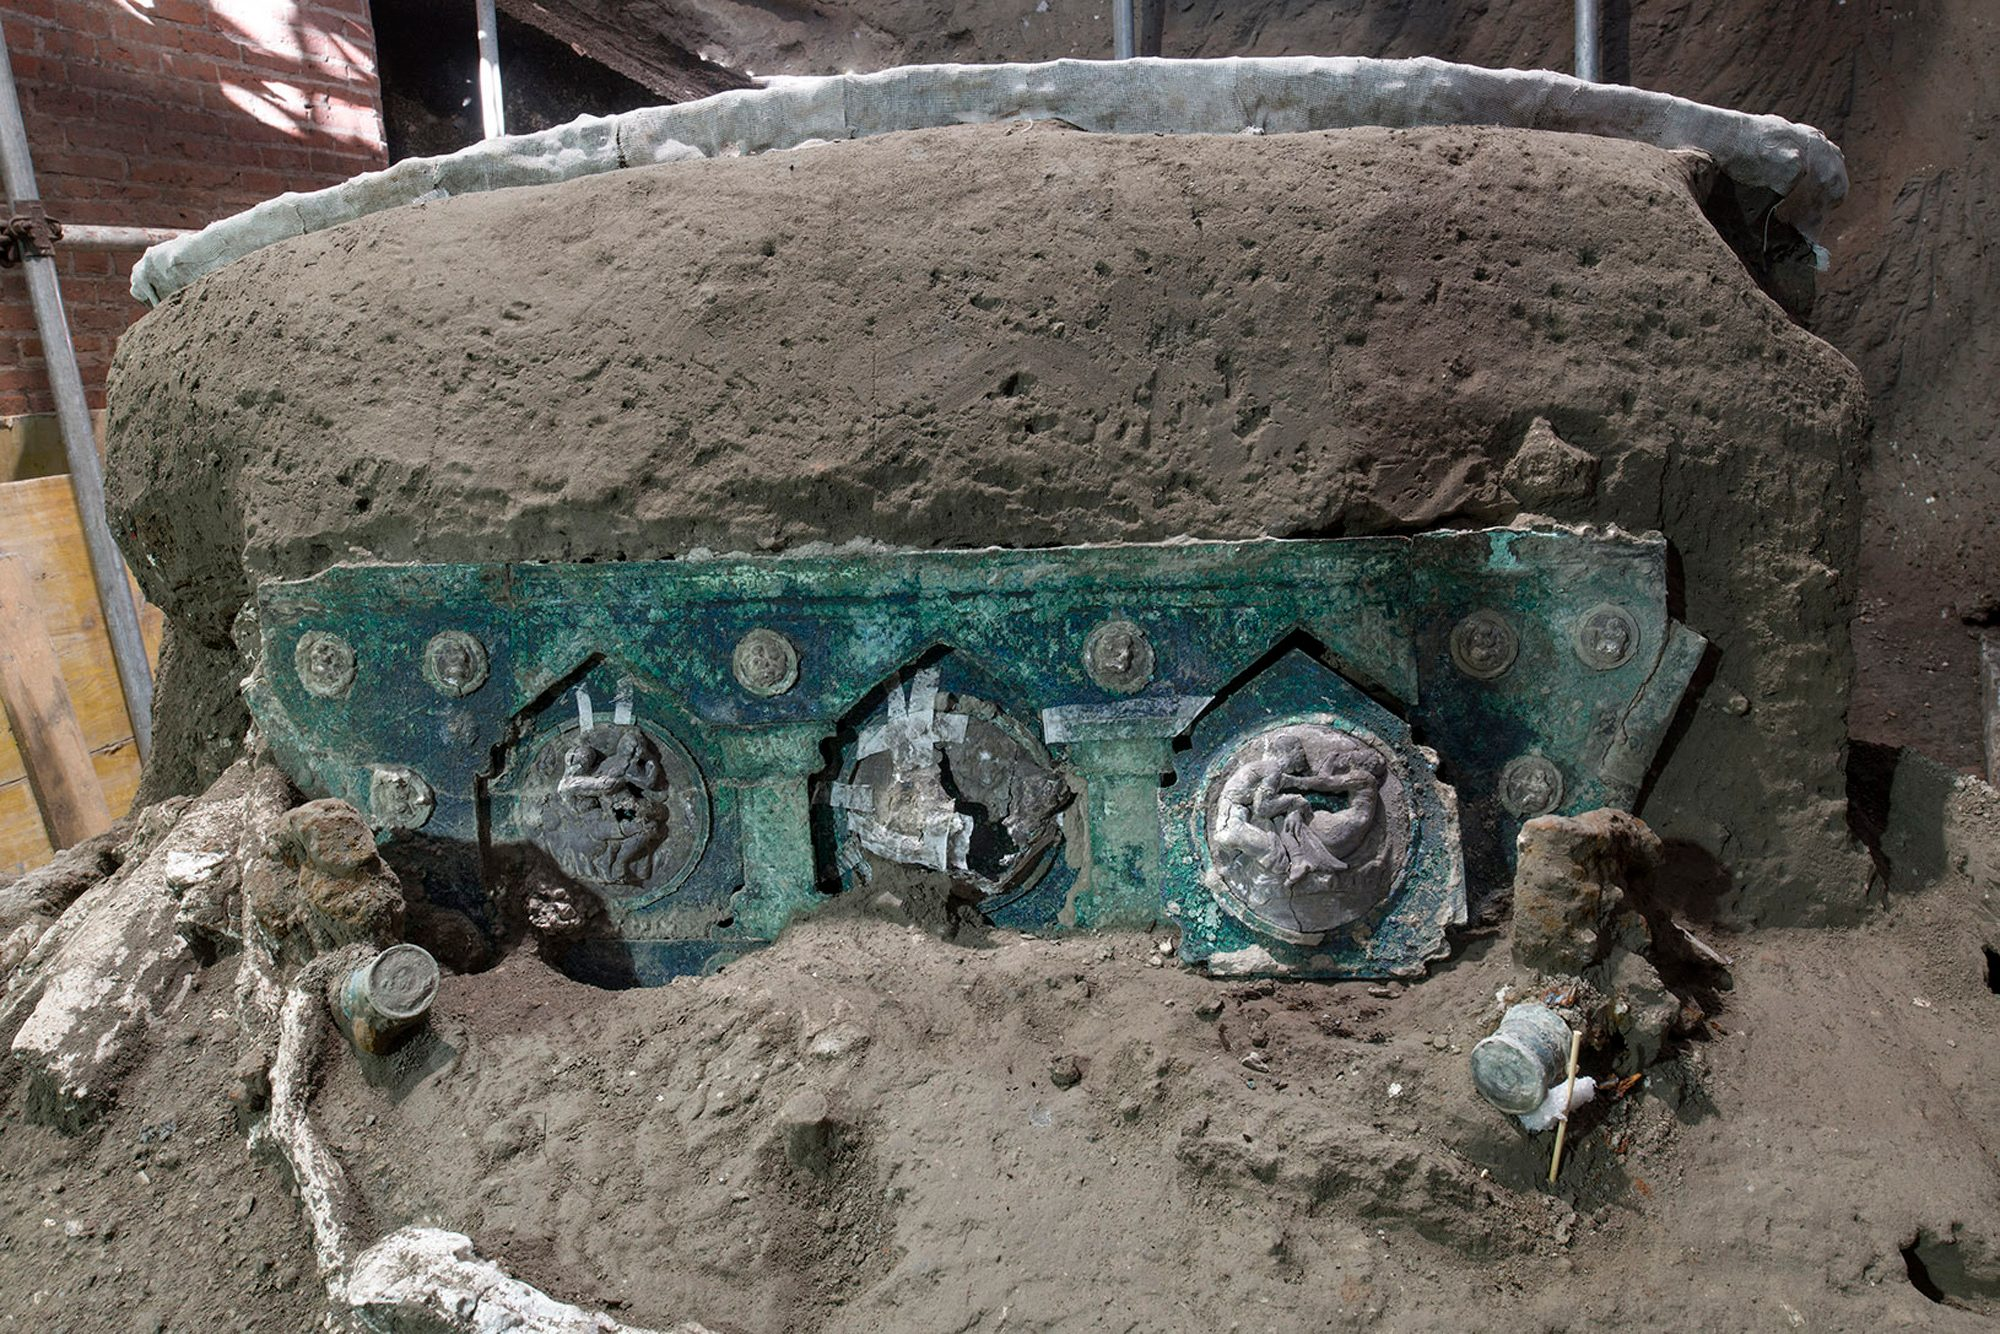 Archeologists Find Intact Ceremonial Chariot Near Pompeii - snopes